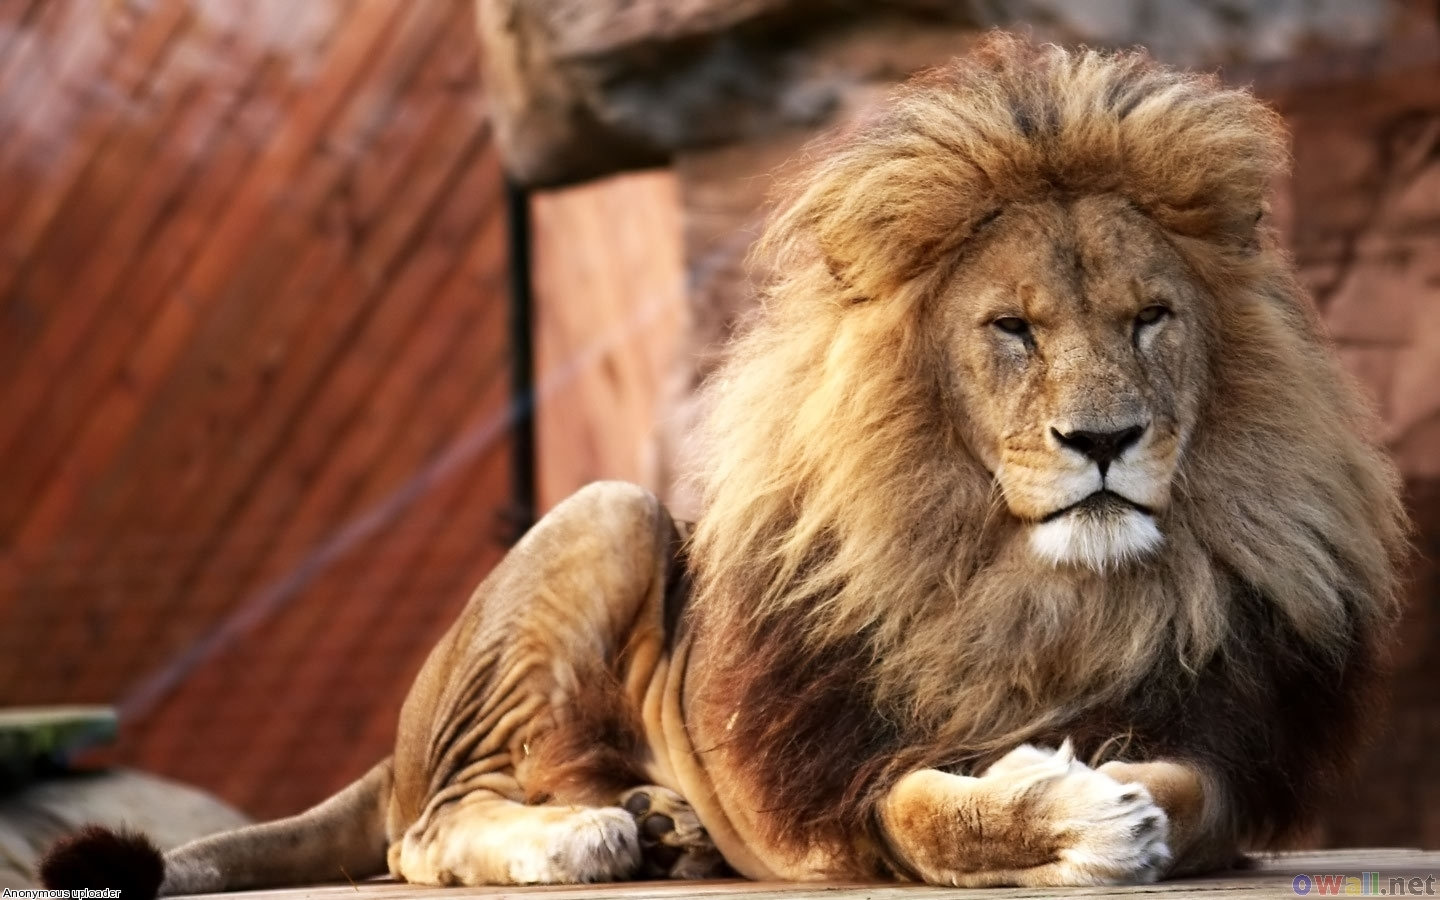 Male Lion Wallpapers |...